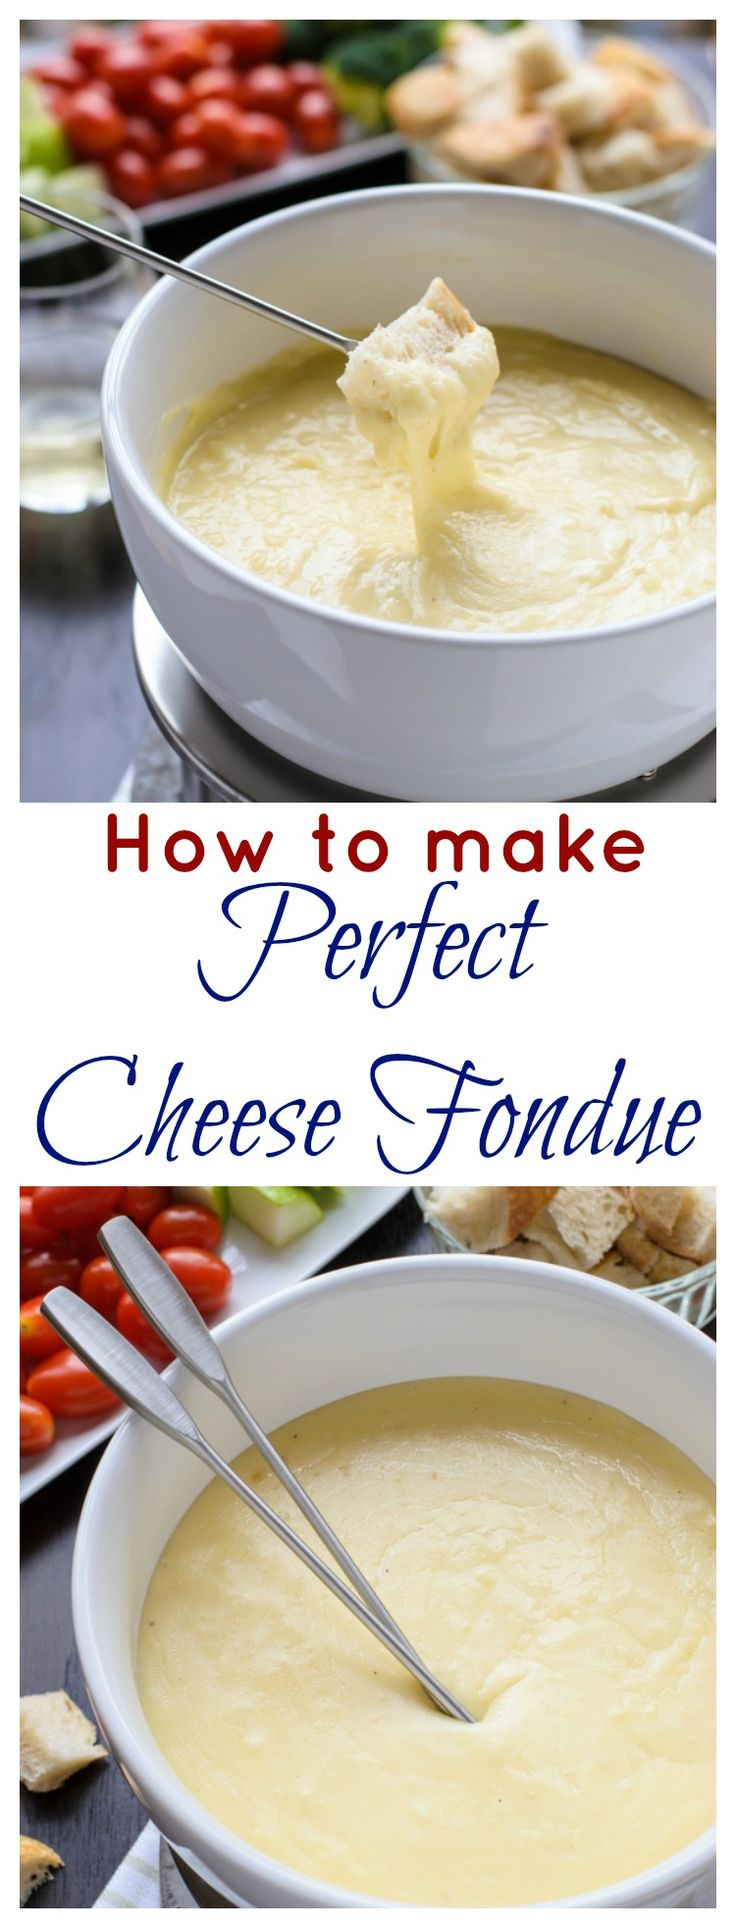 How to make perfect cheese fondue. An easy fondue recipe with tips and ideas for fondue dippers. The perfect recipe for a fondue party!